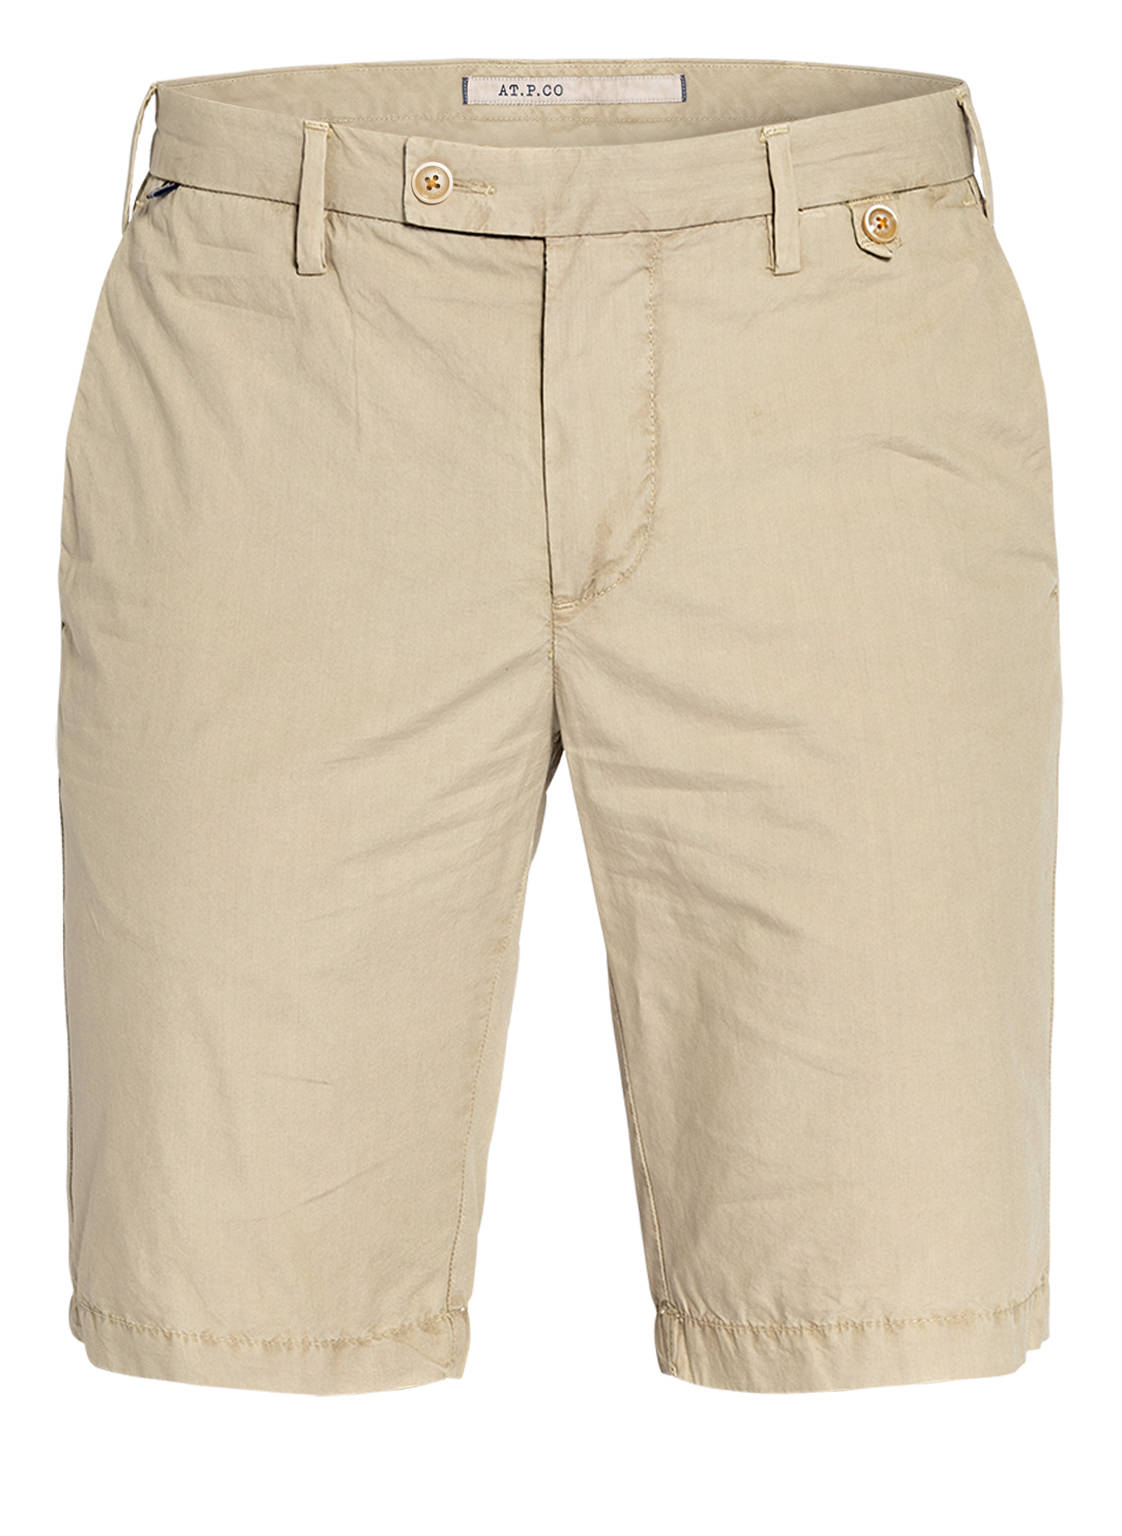 Image of At.P.Co Chino-Shorts Jack beige